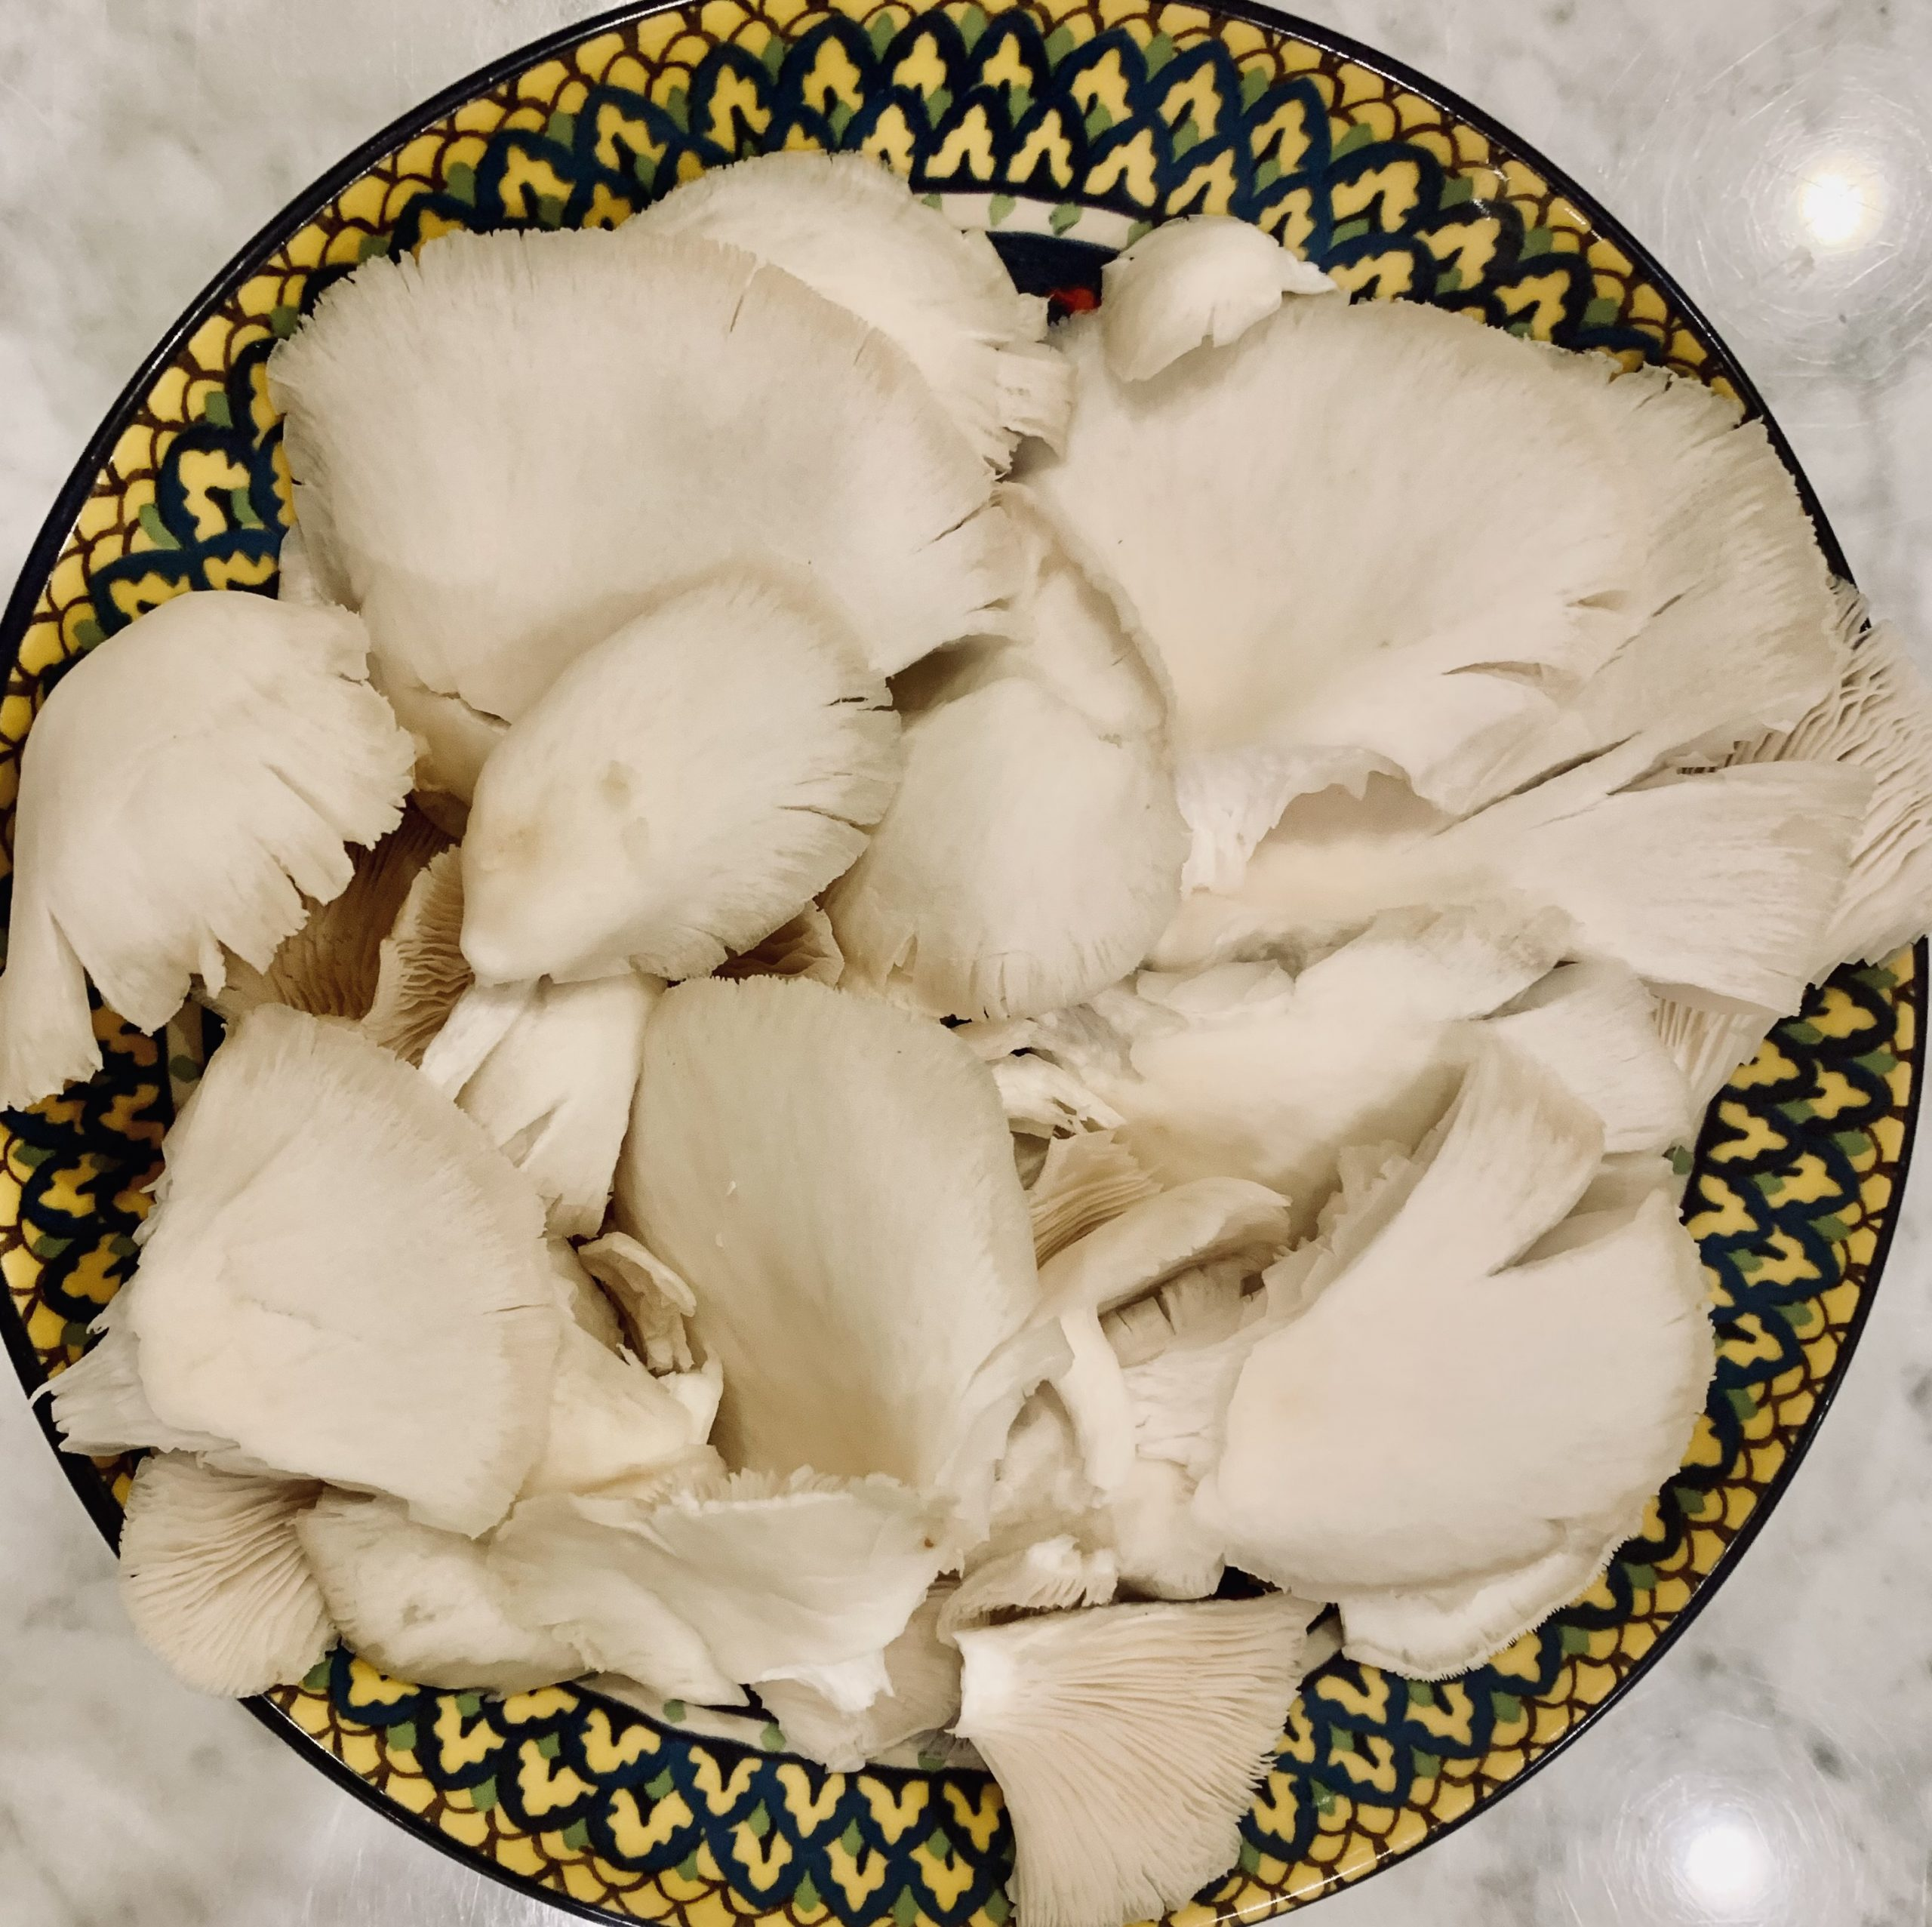 Oyster Mushrooms from Rebecca Farms